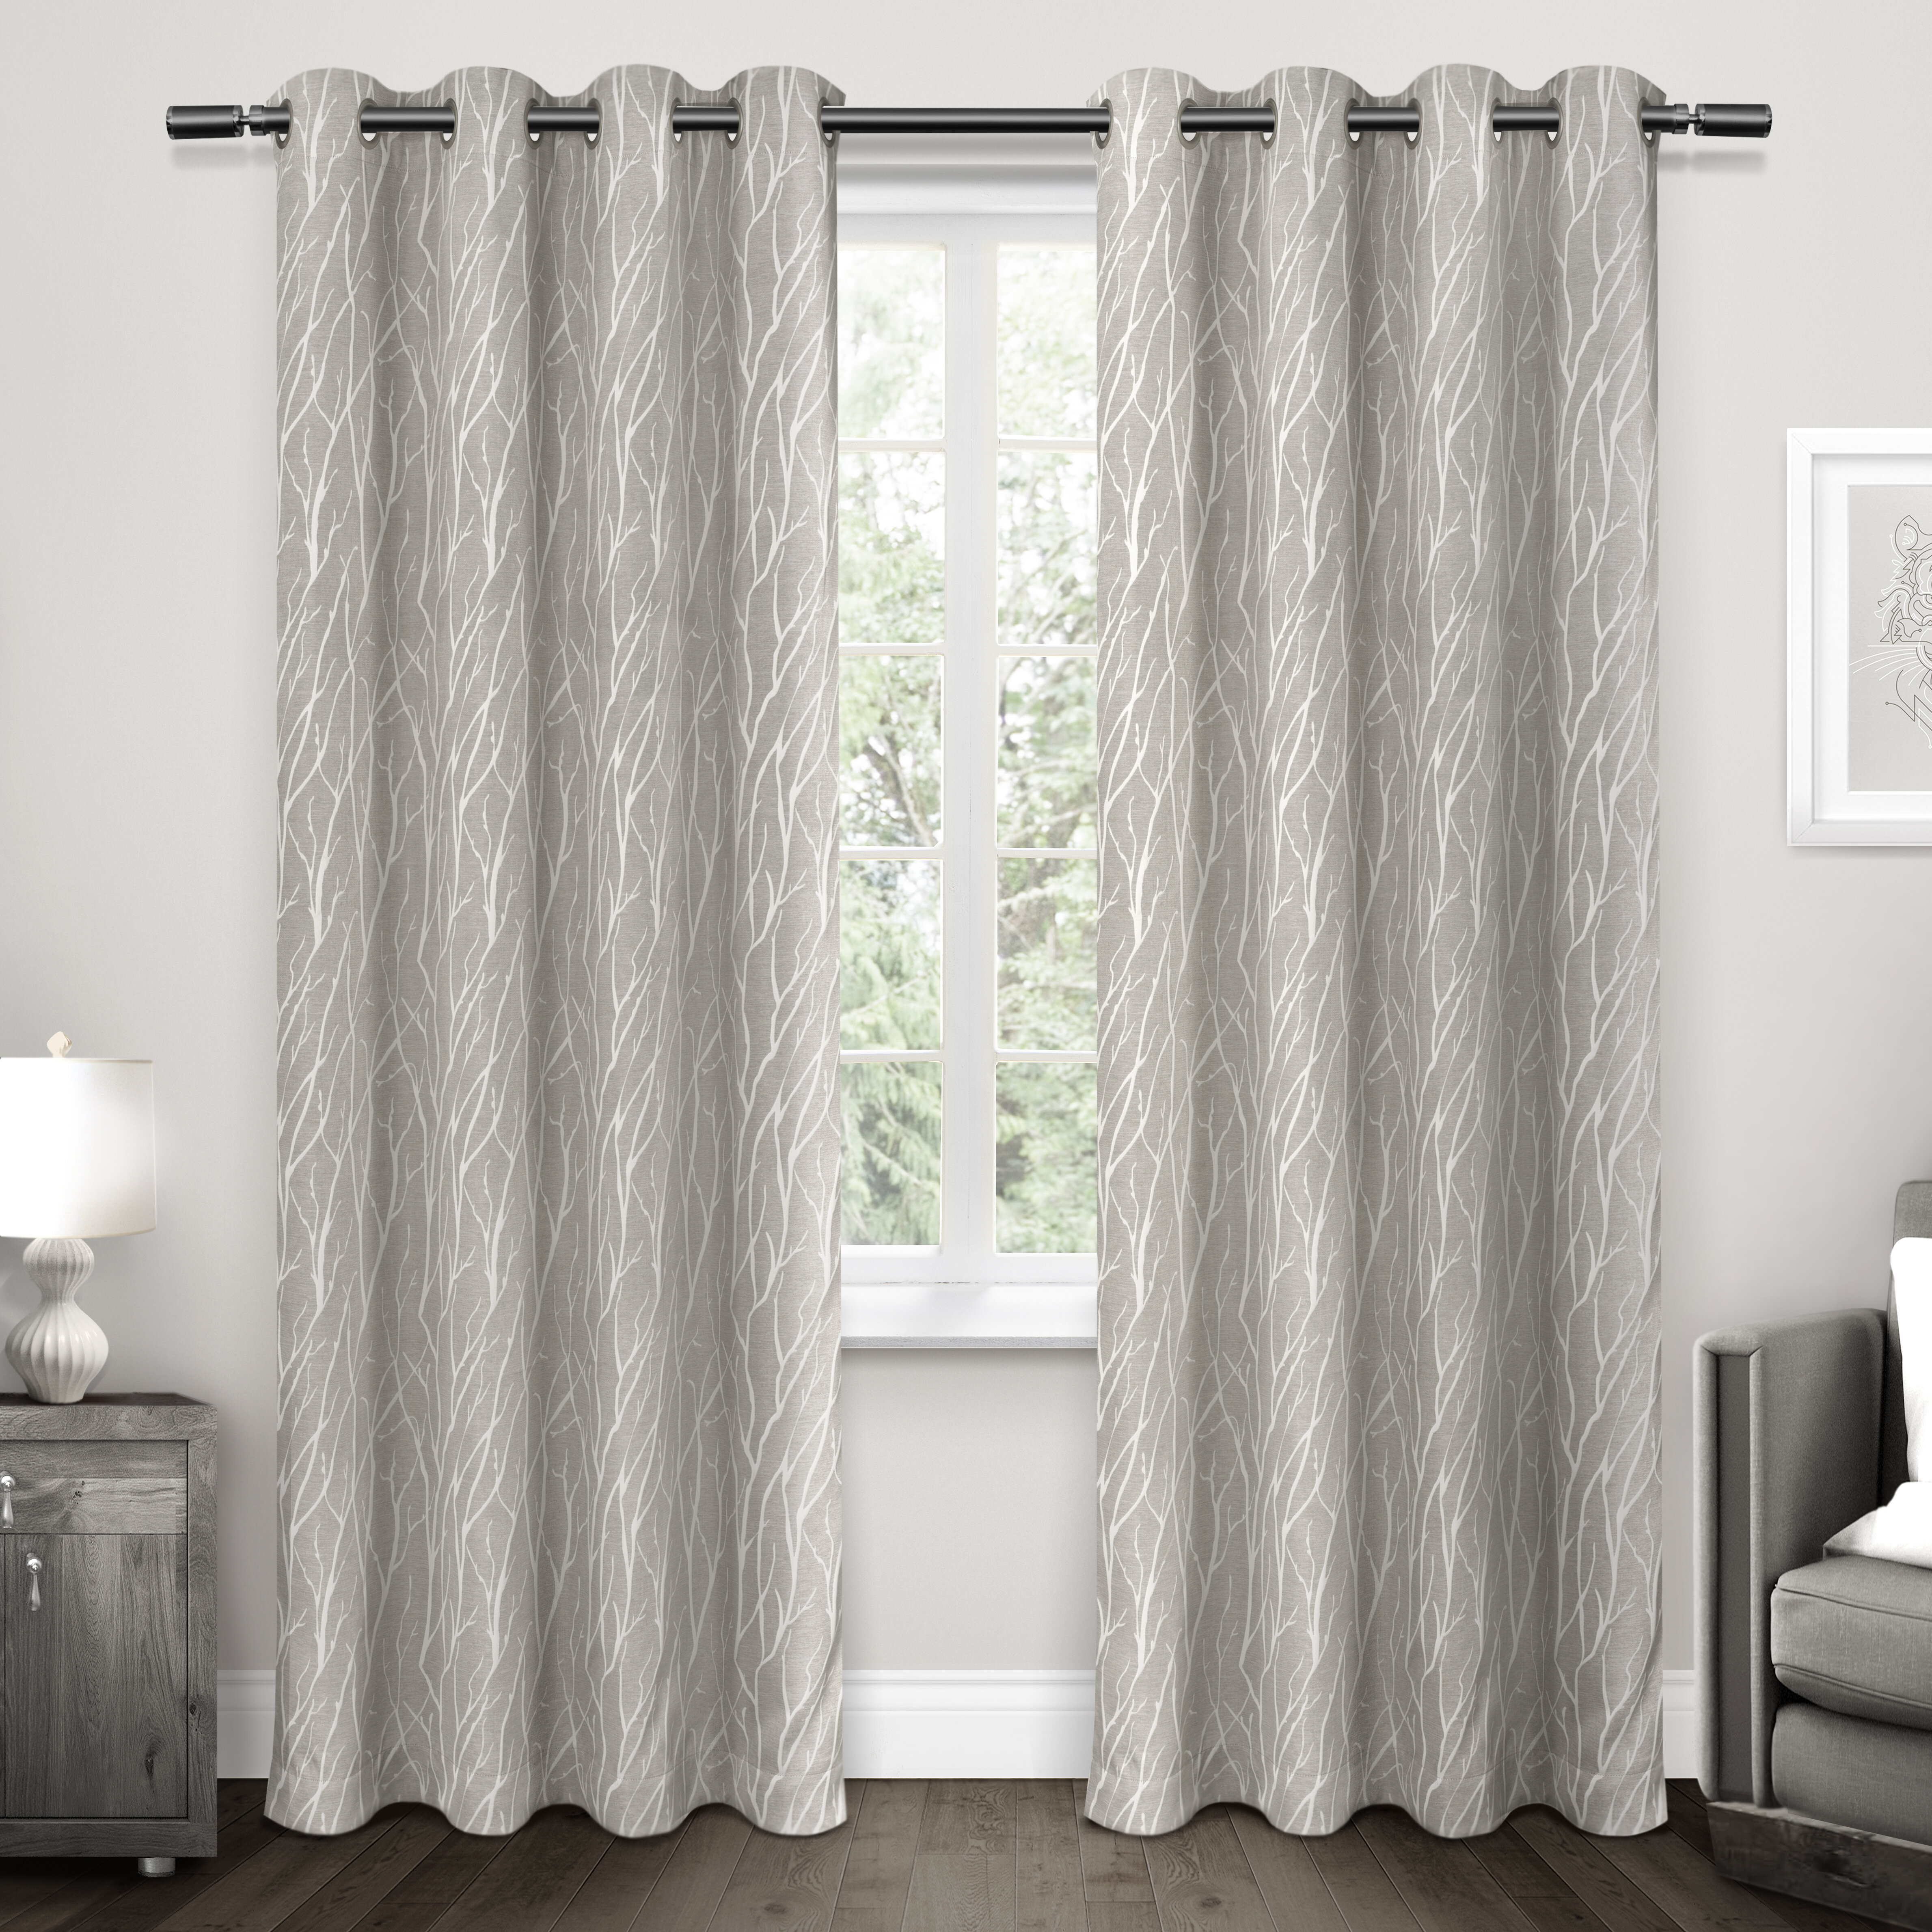 Darby Home Co Prower Blackout Grommet Curtain Panels & Reviews | Wayfair